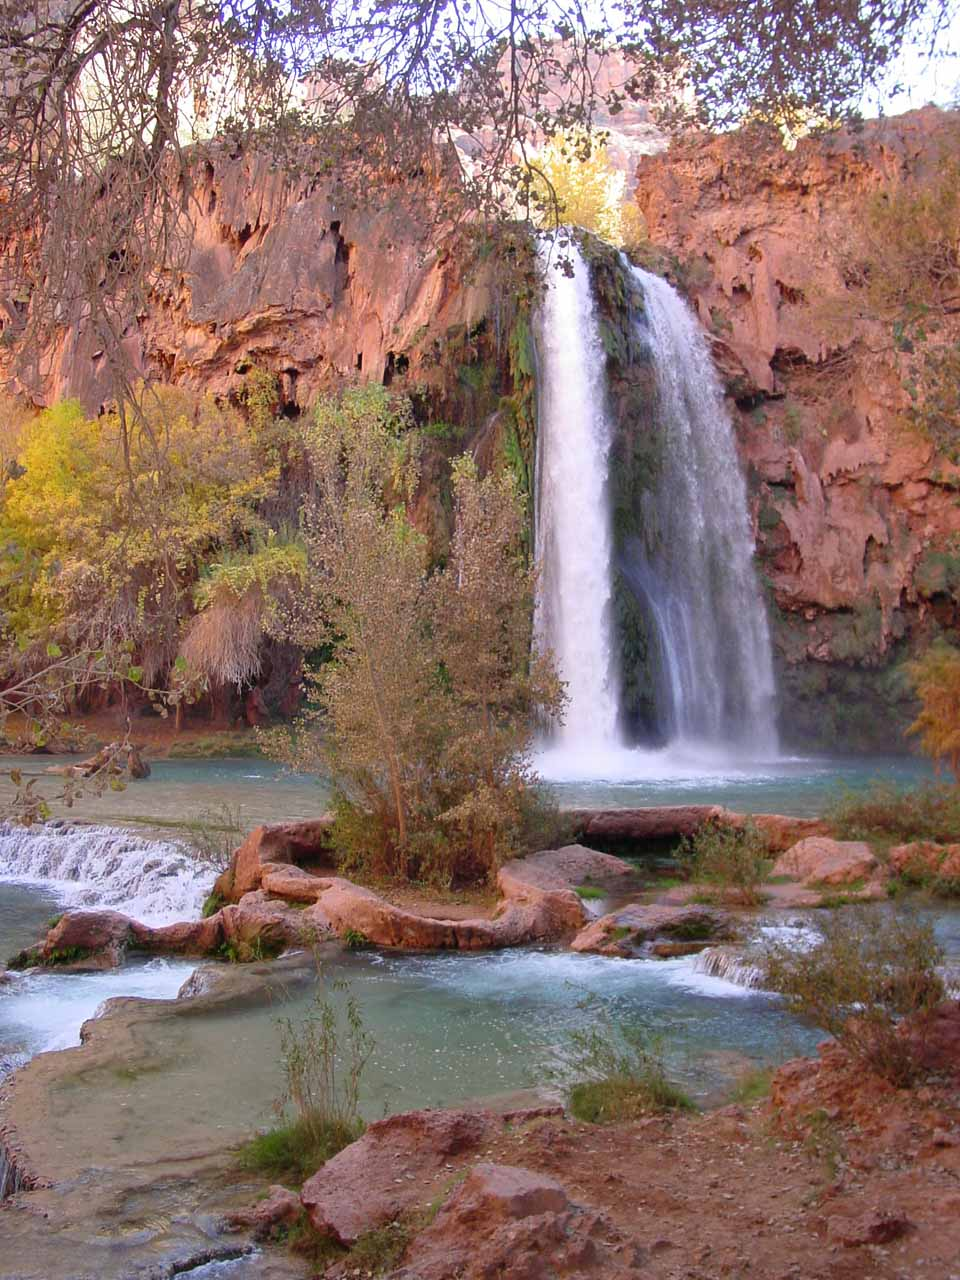 The base of Havasu Falls